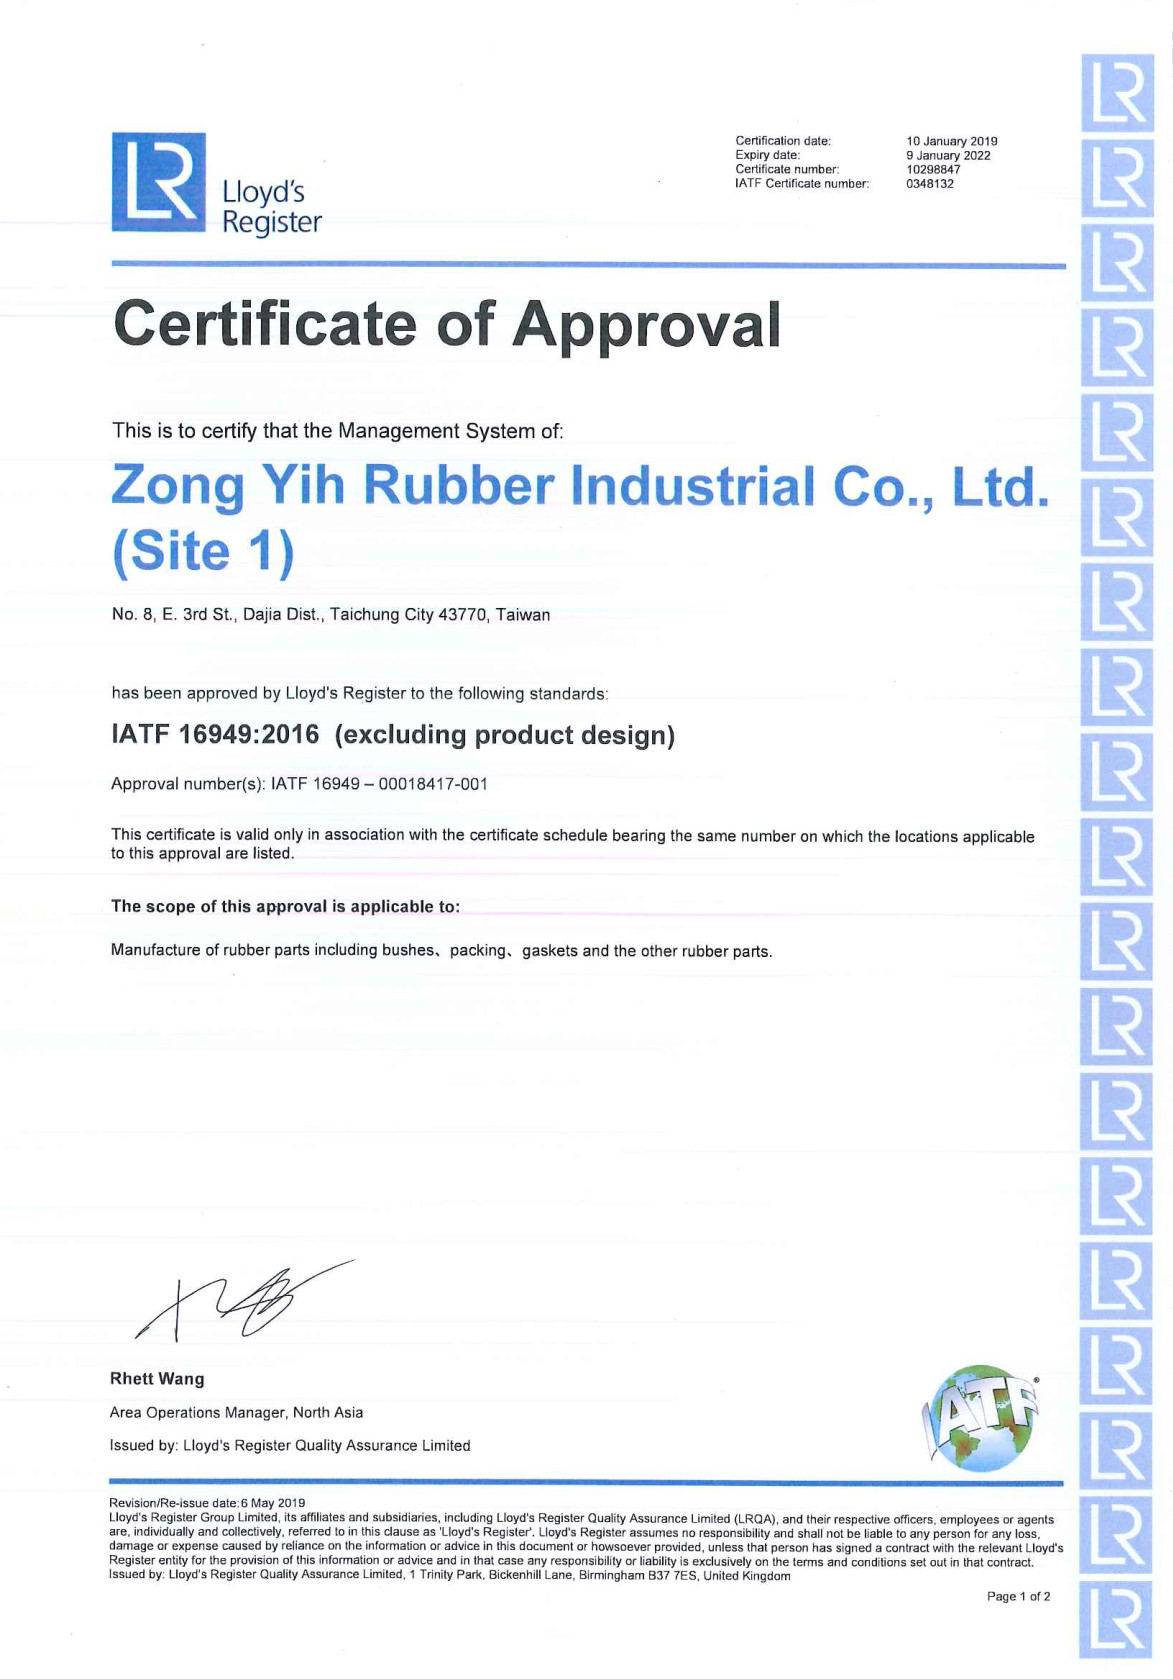 IATF 16949 Certification for Rubber Products